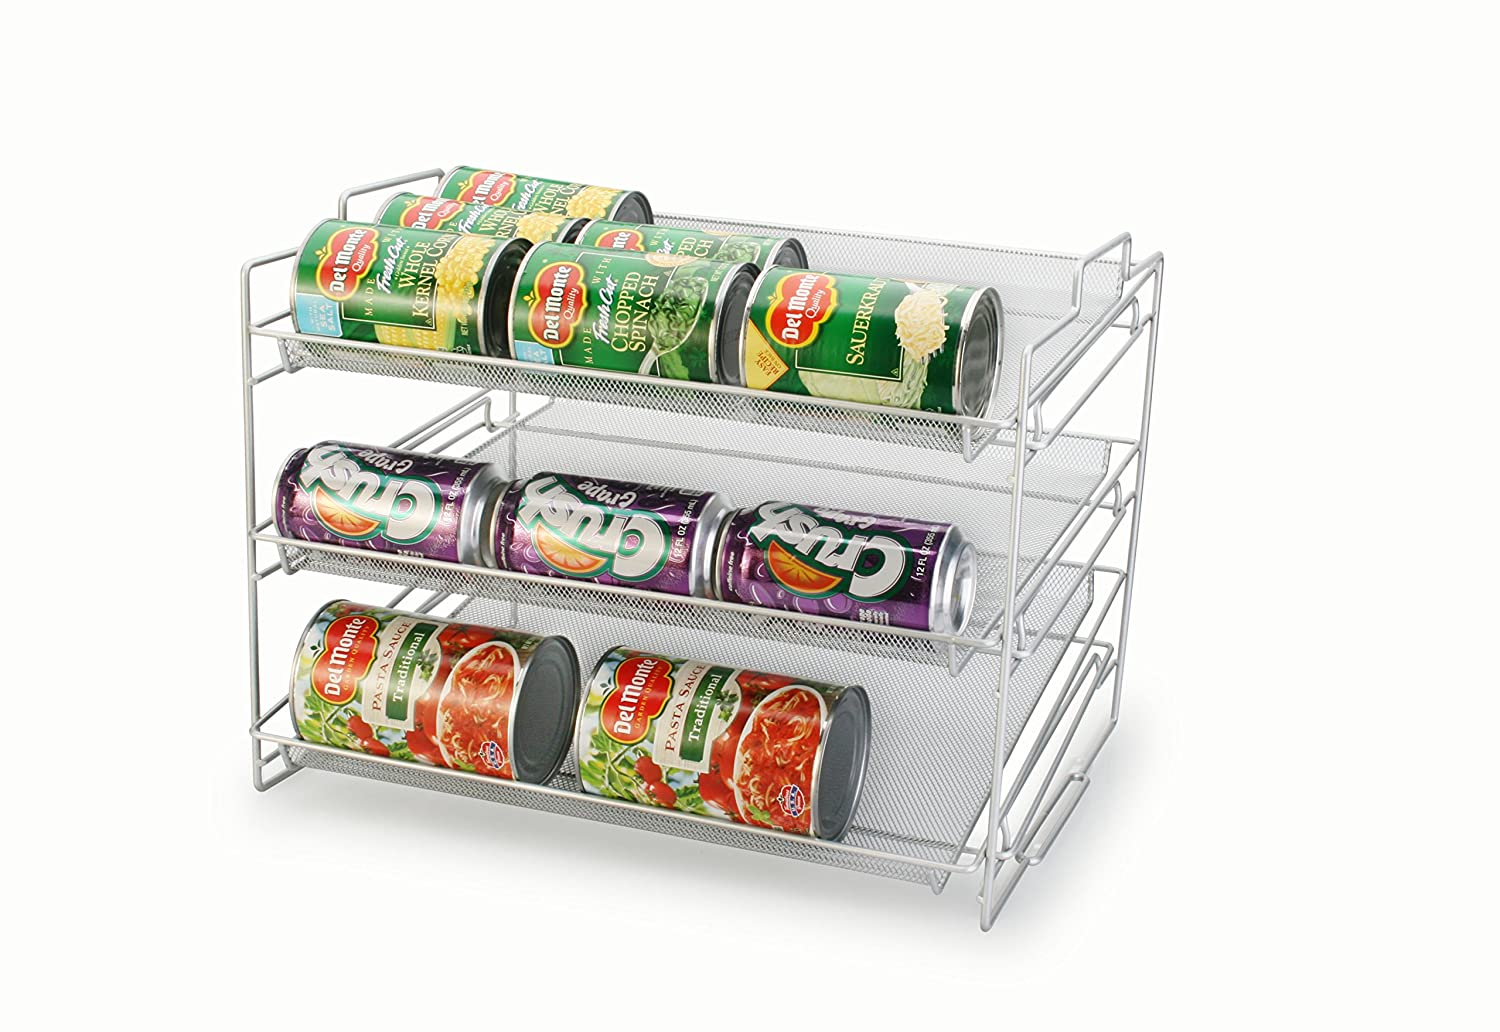 Artestia 3-layer Mesh Steel Stackable Can Rack Organizer, Silver AR-81122